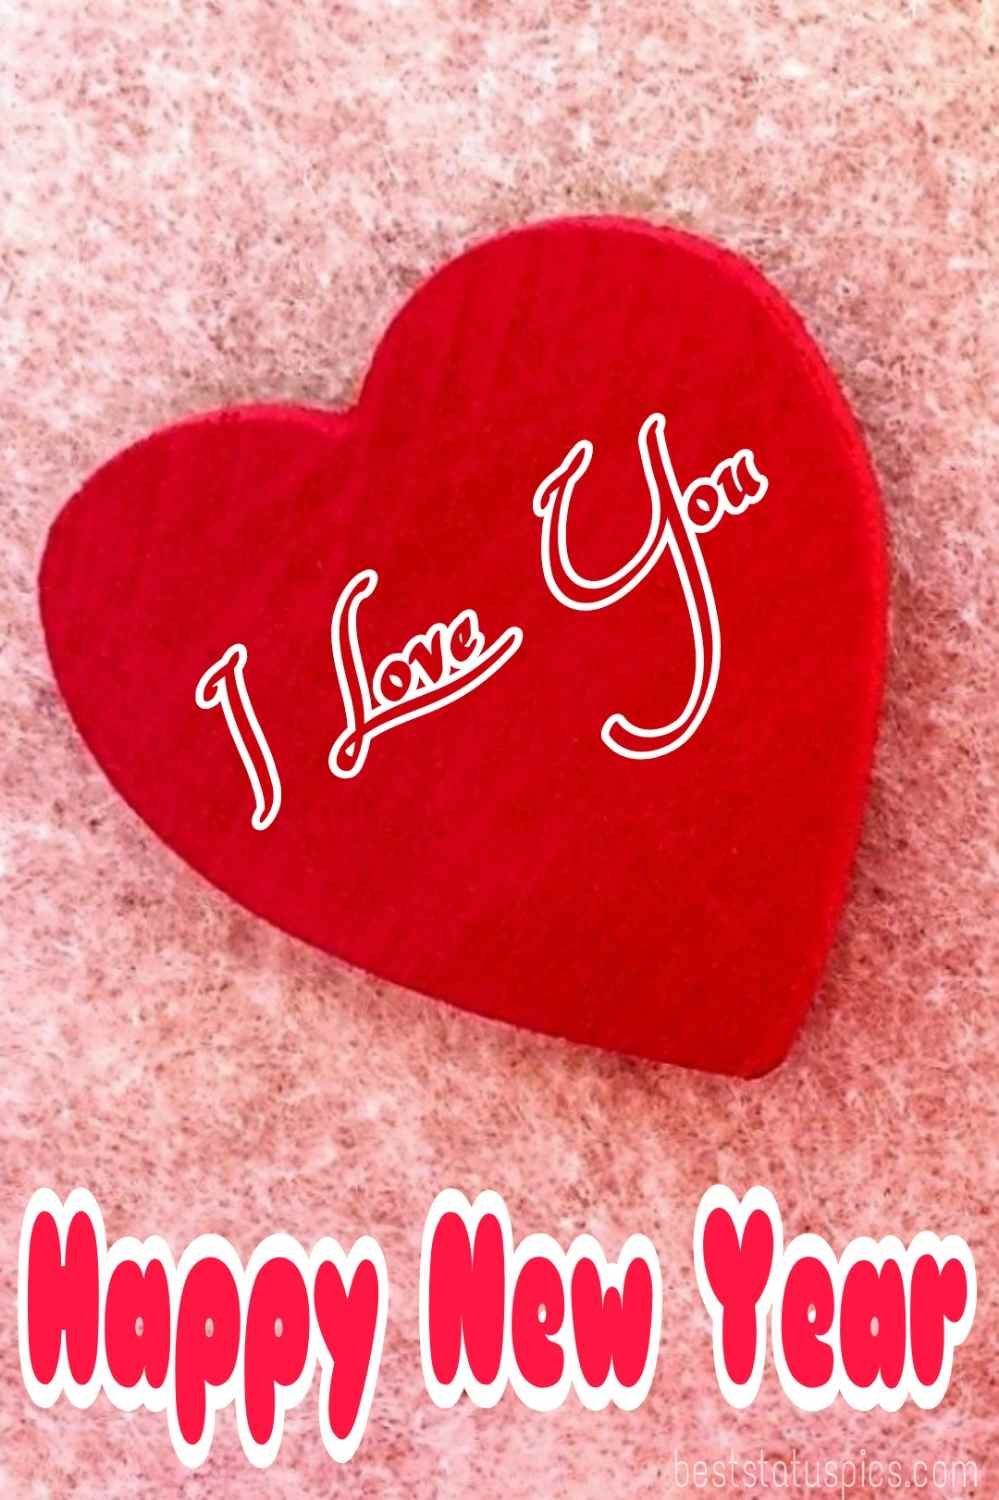 Happy new year 2022 and I love you quotes and greetings for boyfriend